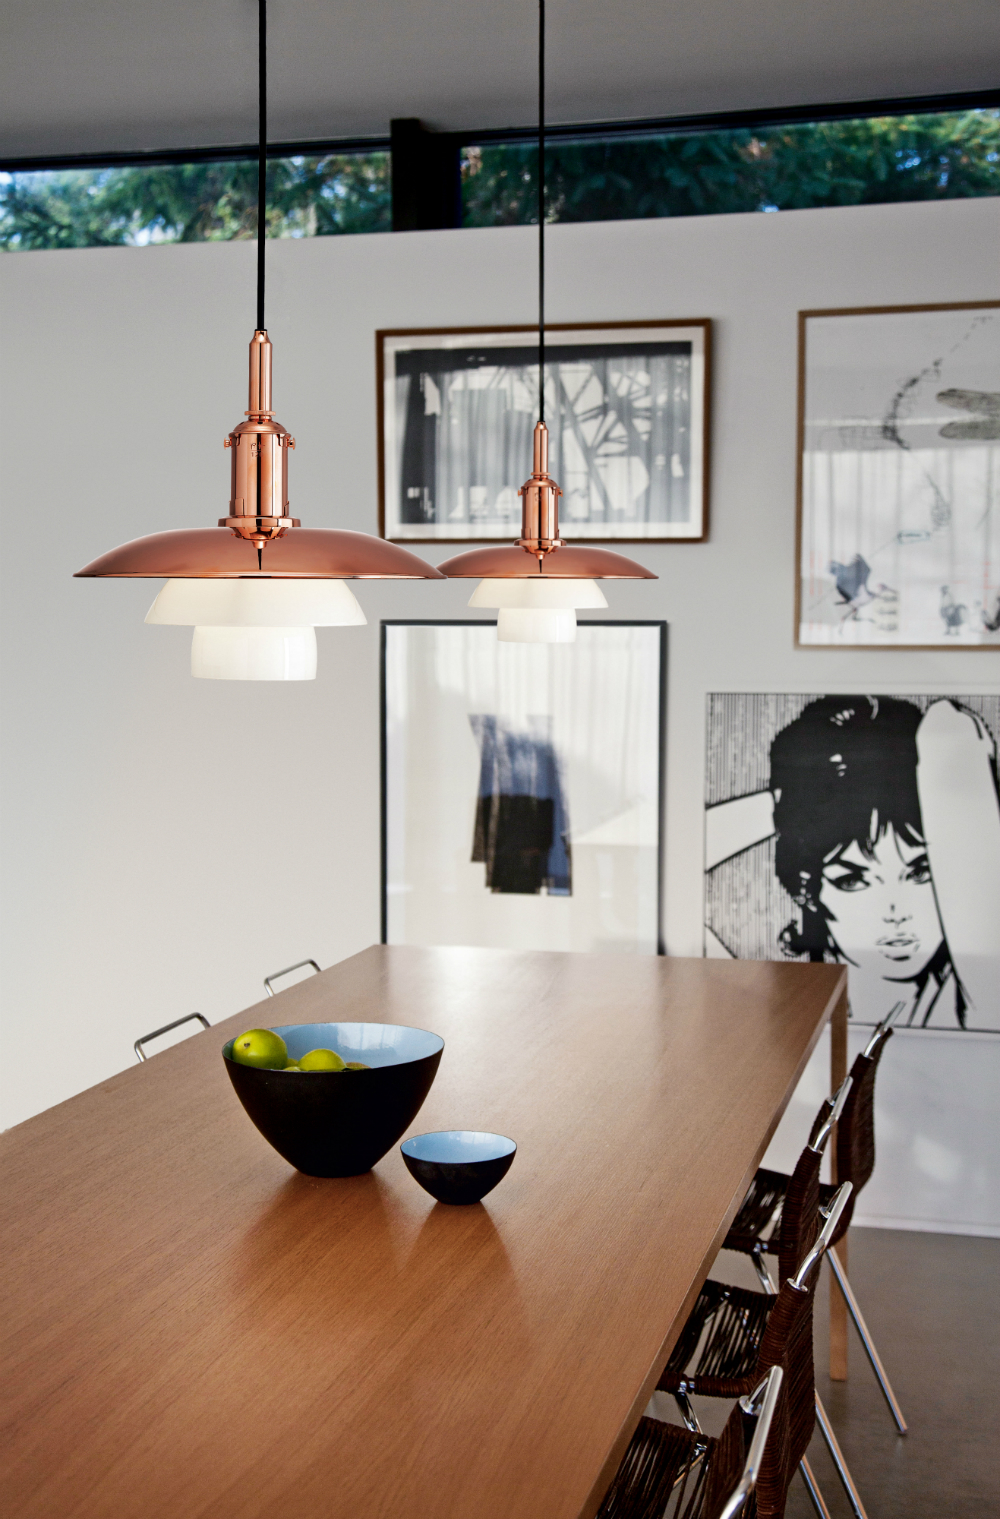 10 Copper Mid-Century Lighting Designs to Inspire your Home Decor